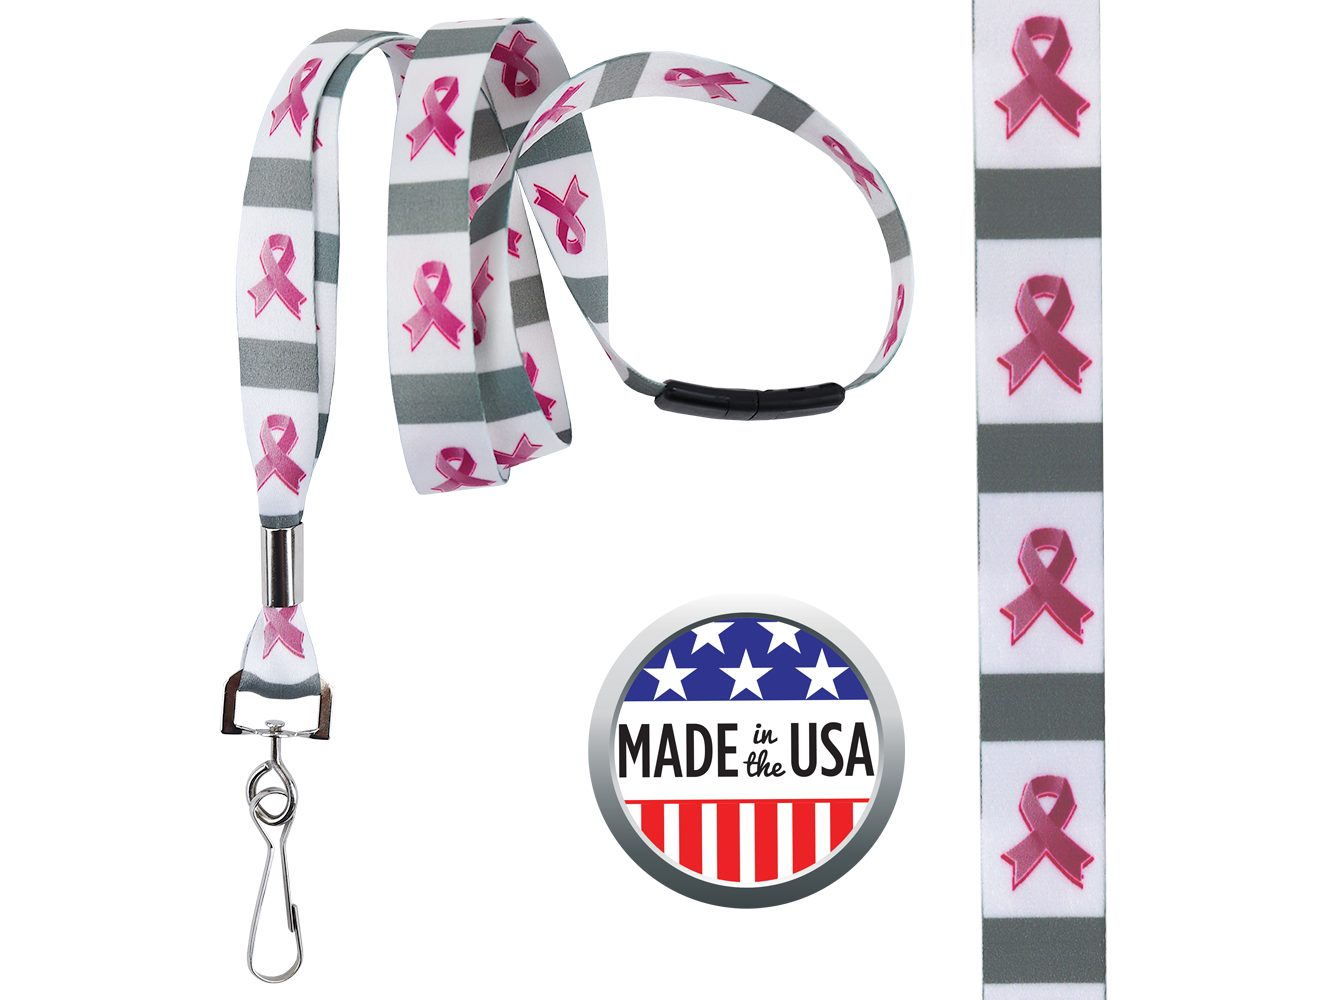 BHBCA07: 5/8″ Pre-decorated Breast Cancer Awareness Lanyards